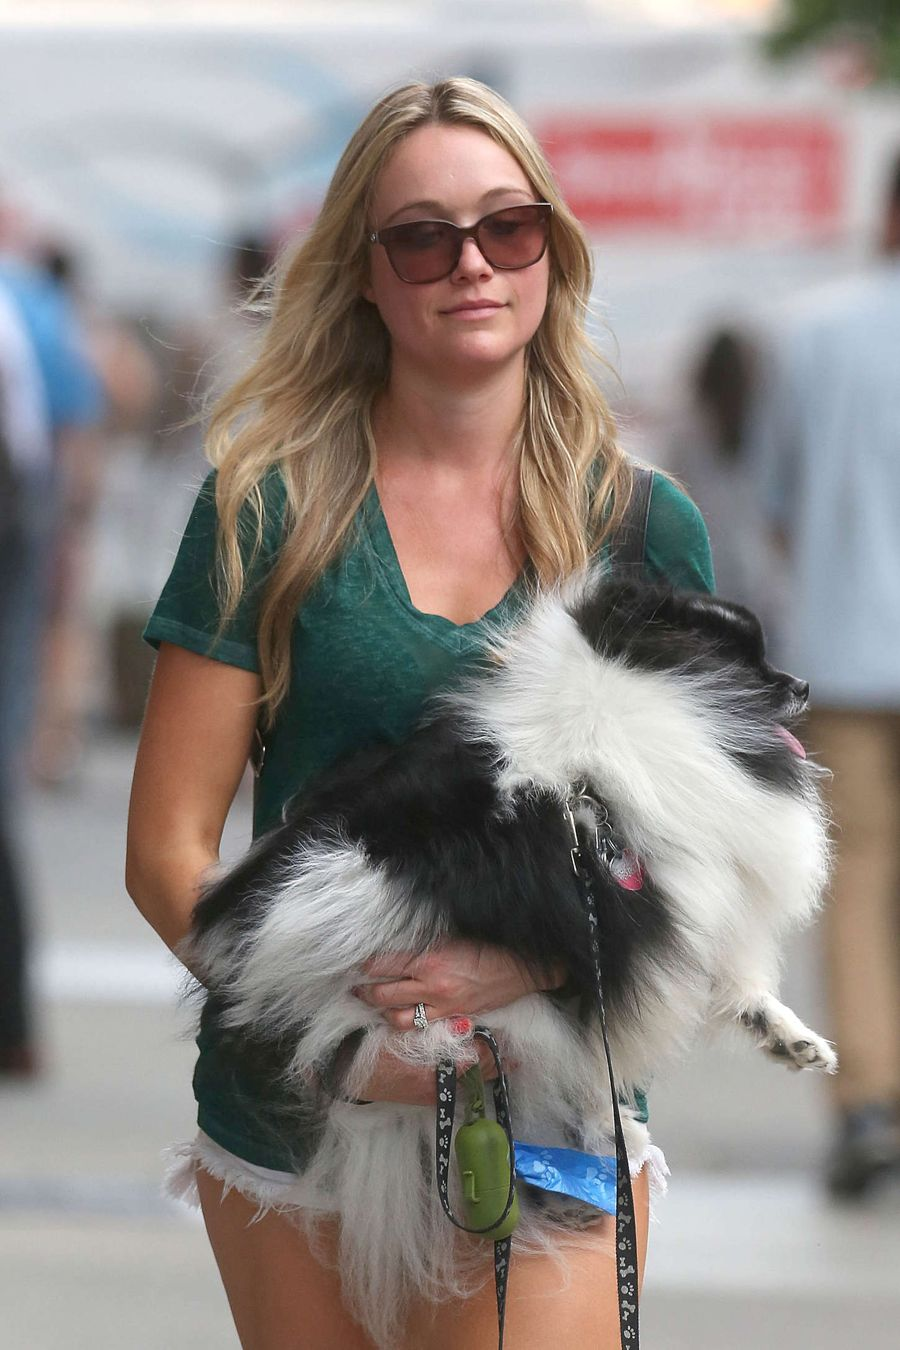 Katrina Bowden Walking her Dog in White Shorts in NYC